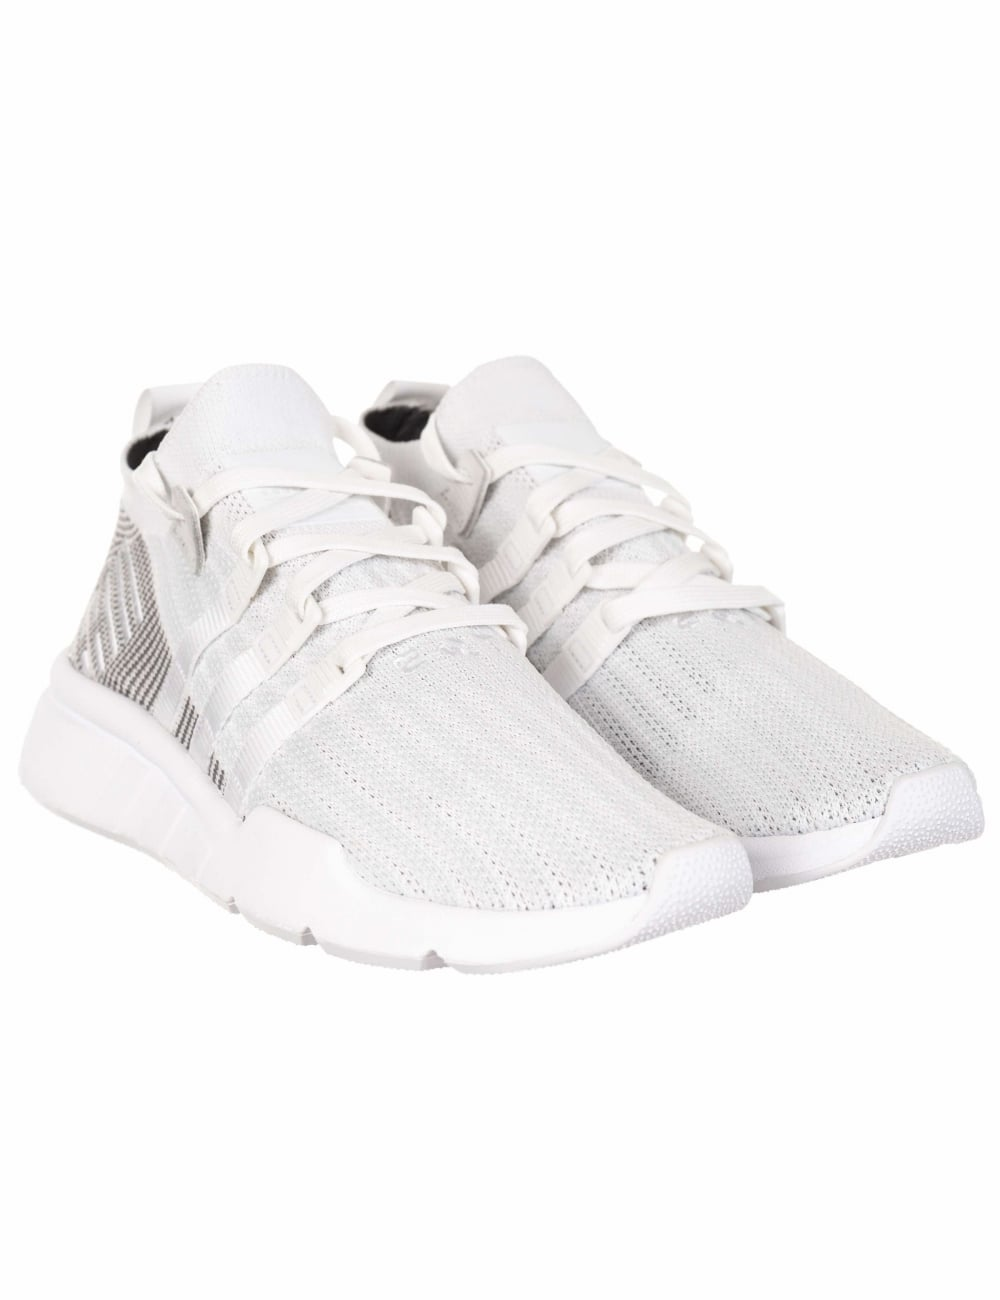 best sneakers f32fe 4fc6e EQT Support Mid ADV Primeknit Trainers - Mid White/Grey